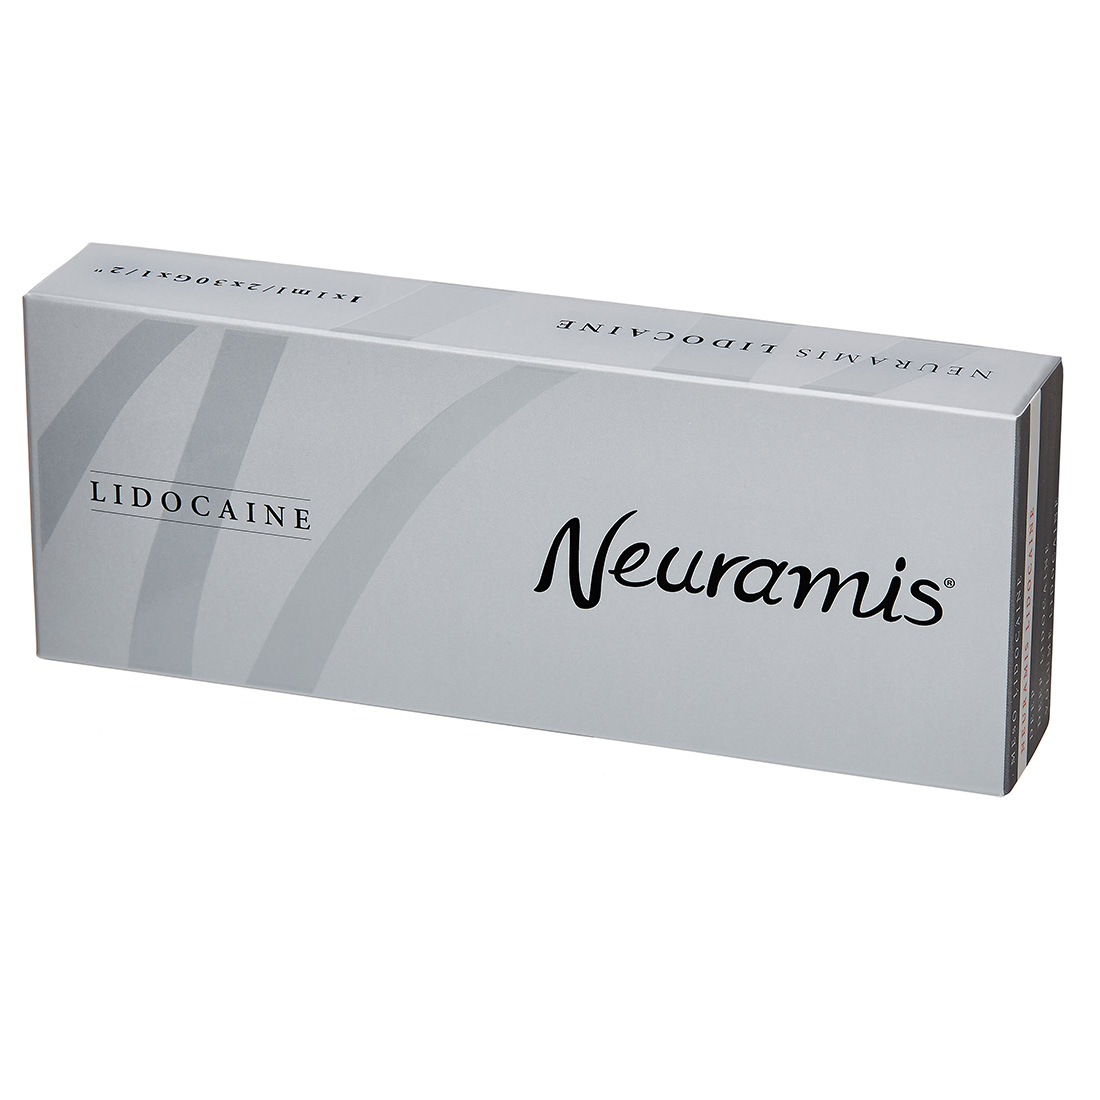 Филлер Neuramis Lidocaine